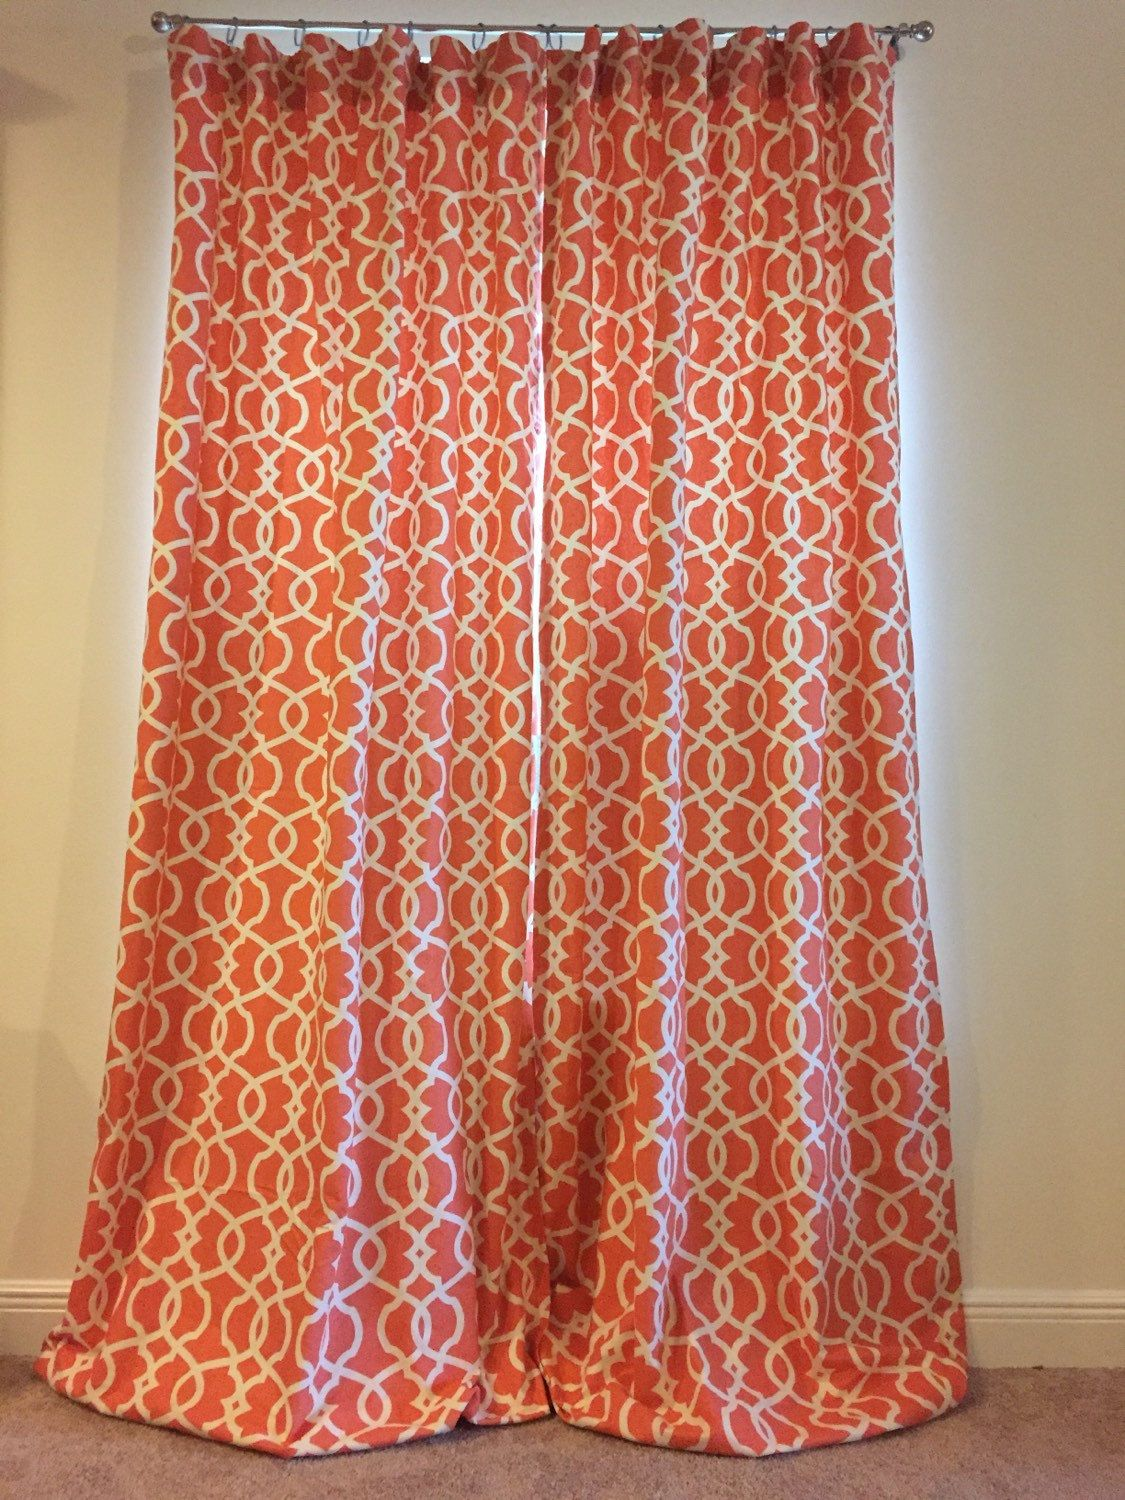 Pair Of Ring Top Tangerine Trellis Drapes 50 X 107 With Thermal Suede Lining Ready To Ship Eclectic Design Drapes Grommet Pleated Drapes